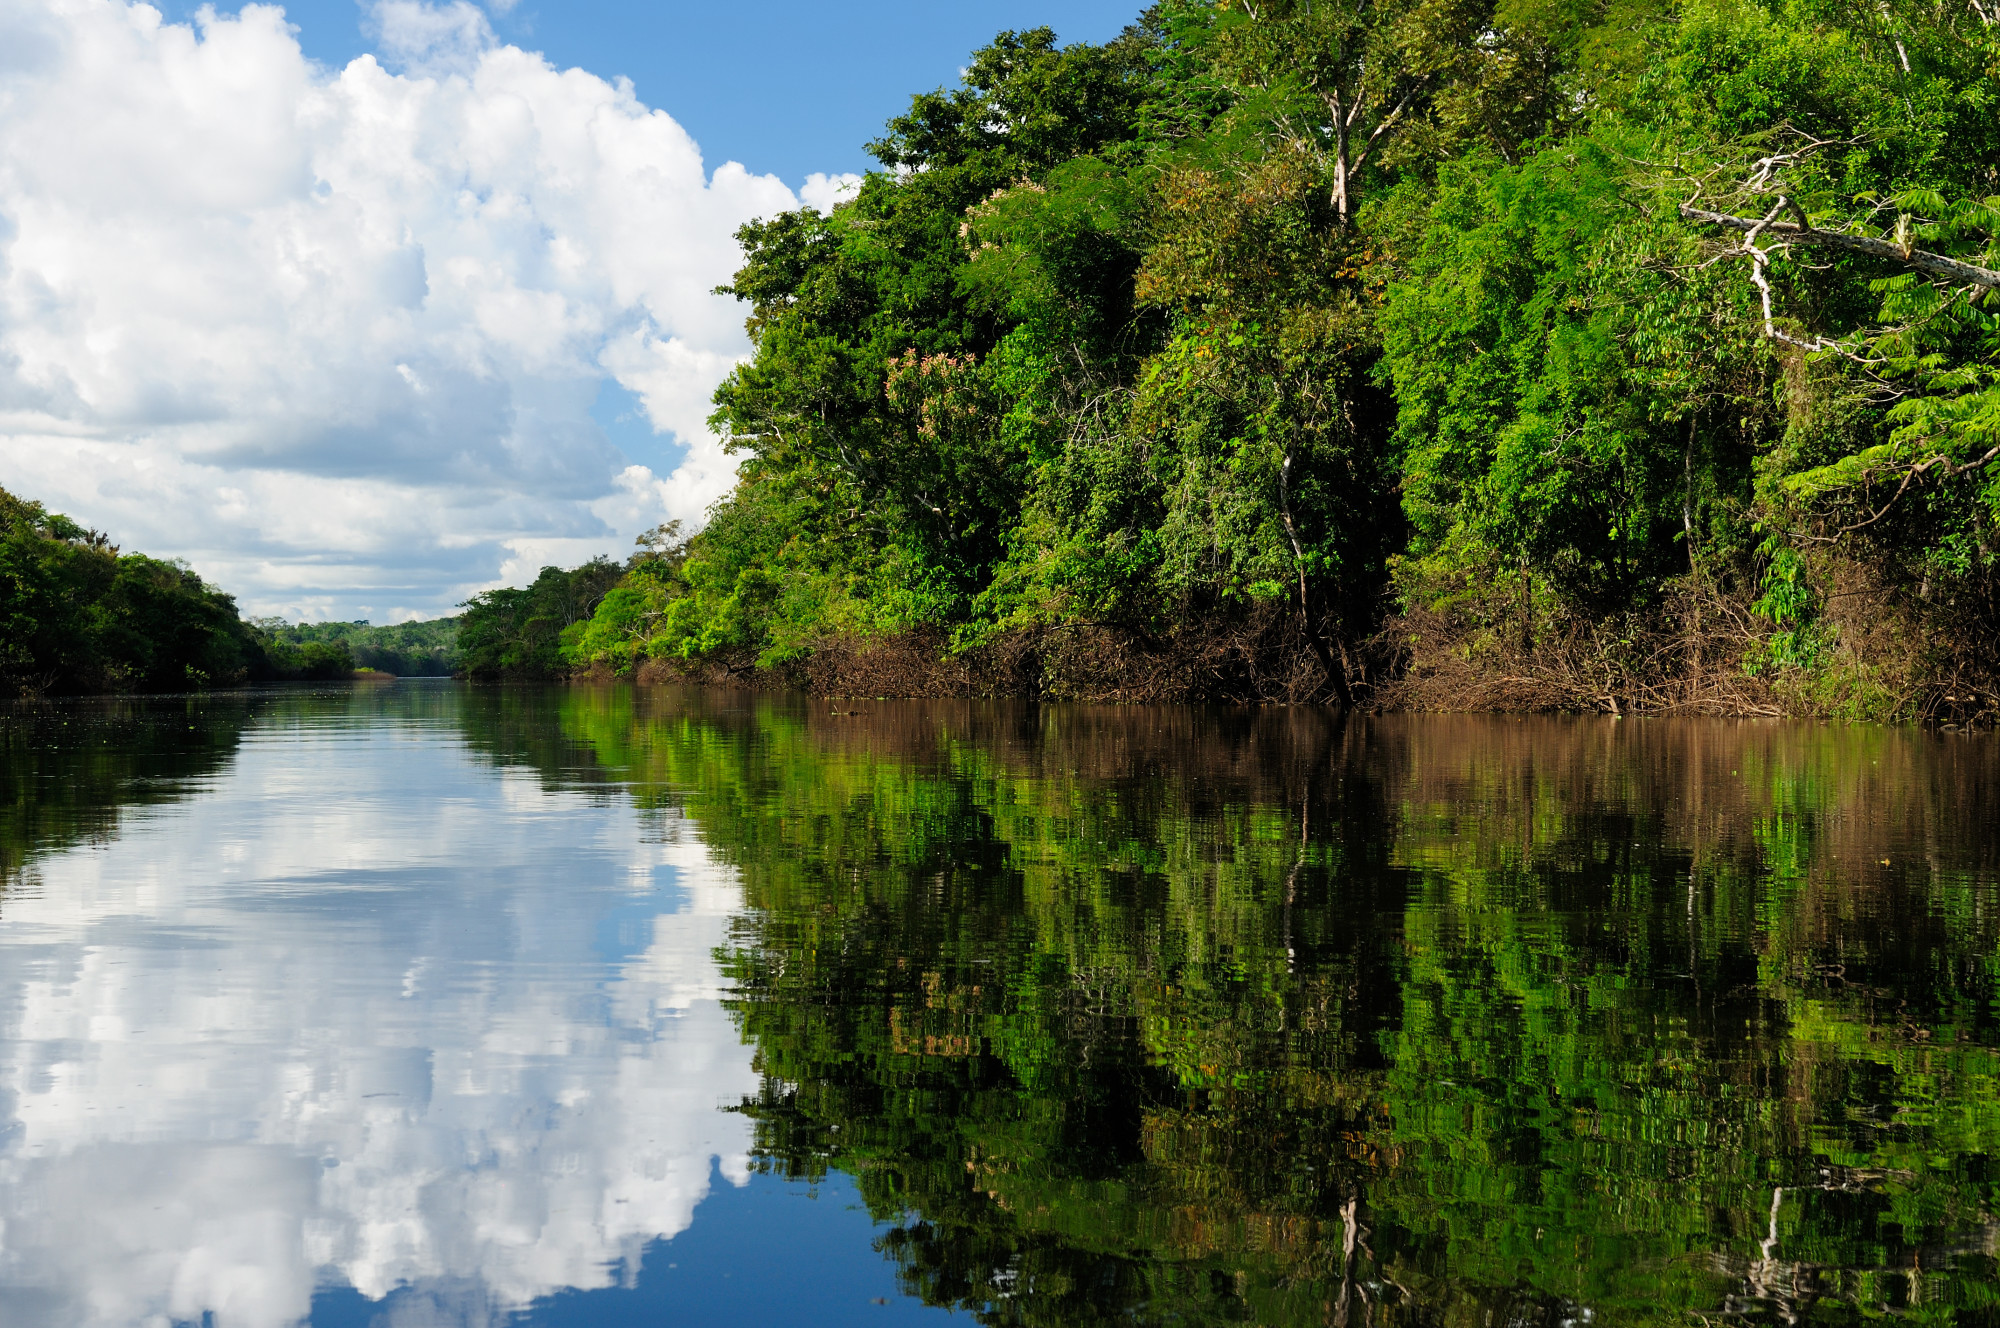 Exploring the Jungle: What to Expect on an Amazon River Cruise (with Tips for a Great Trip!)